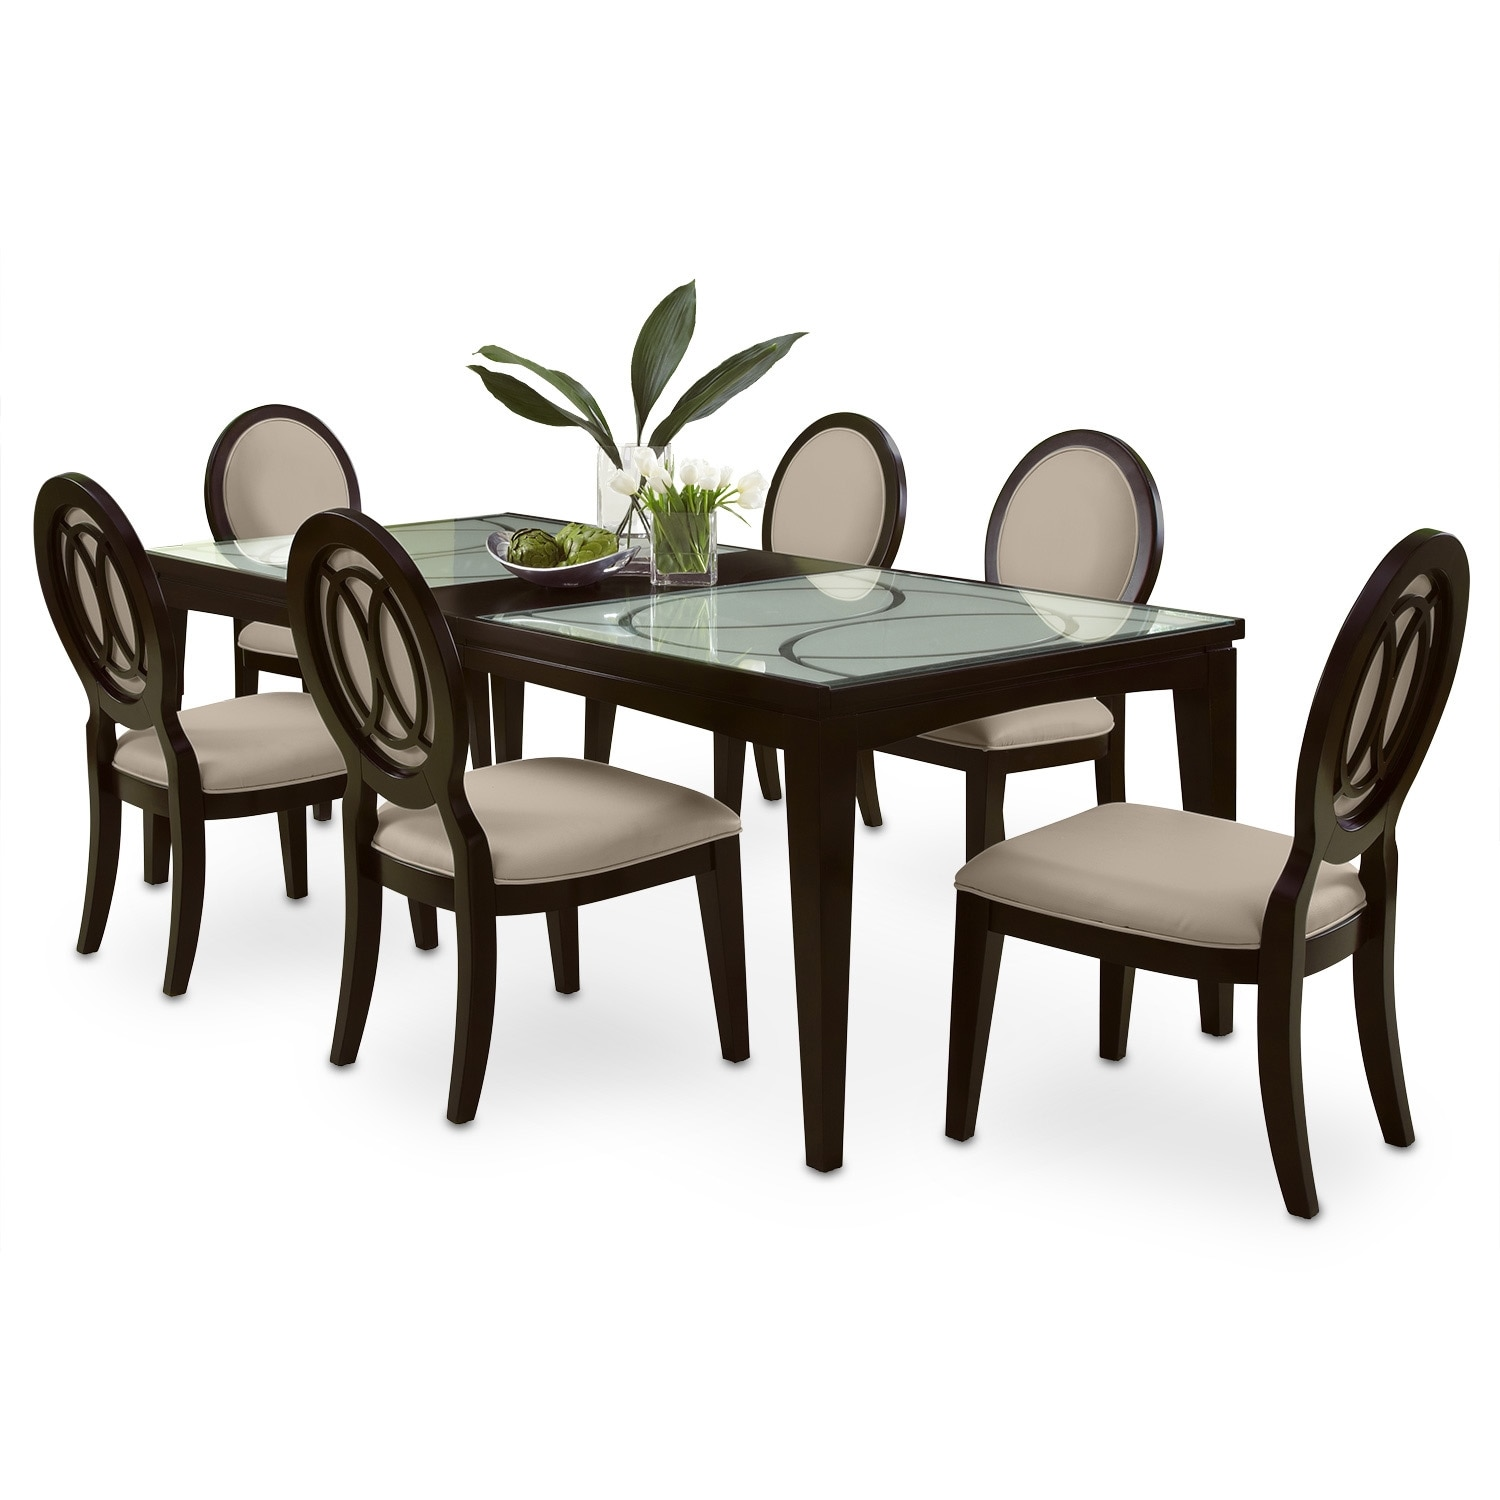 Cosmo table and 6 chairs merlot american signature for Rooms to go dining sets